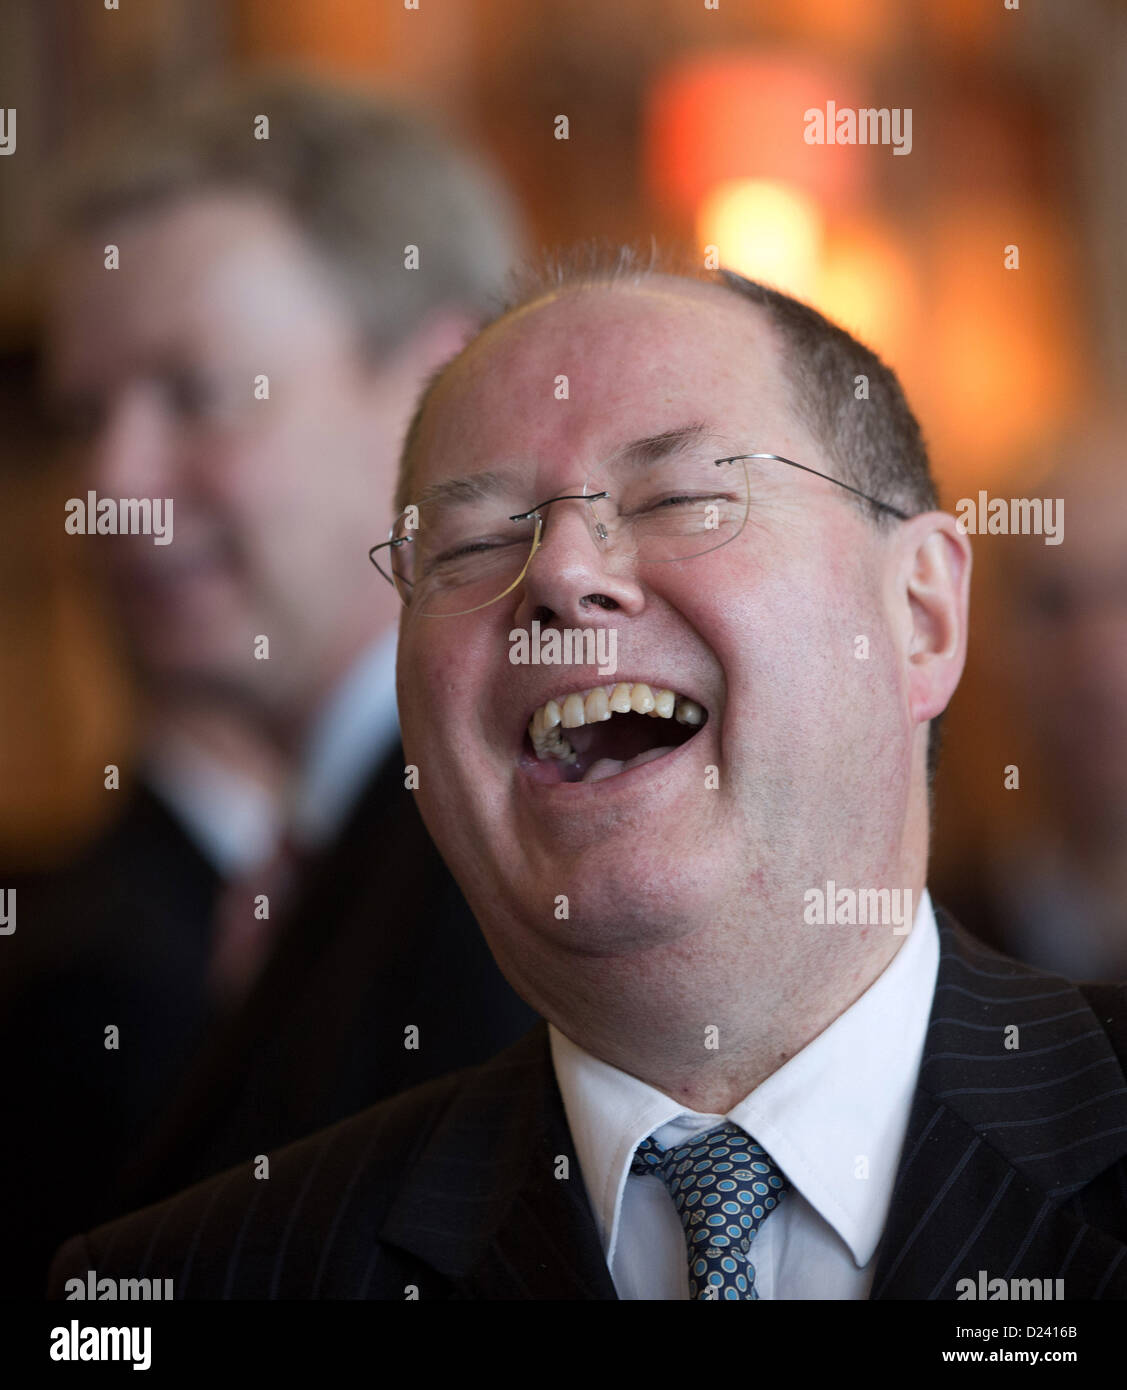 SPD chancellor candidate Peer Steinbrueck arrives for the New Year's reception of the Berliner Morgenpost newspaper - Stock Image